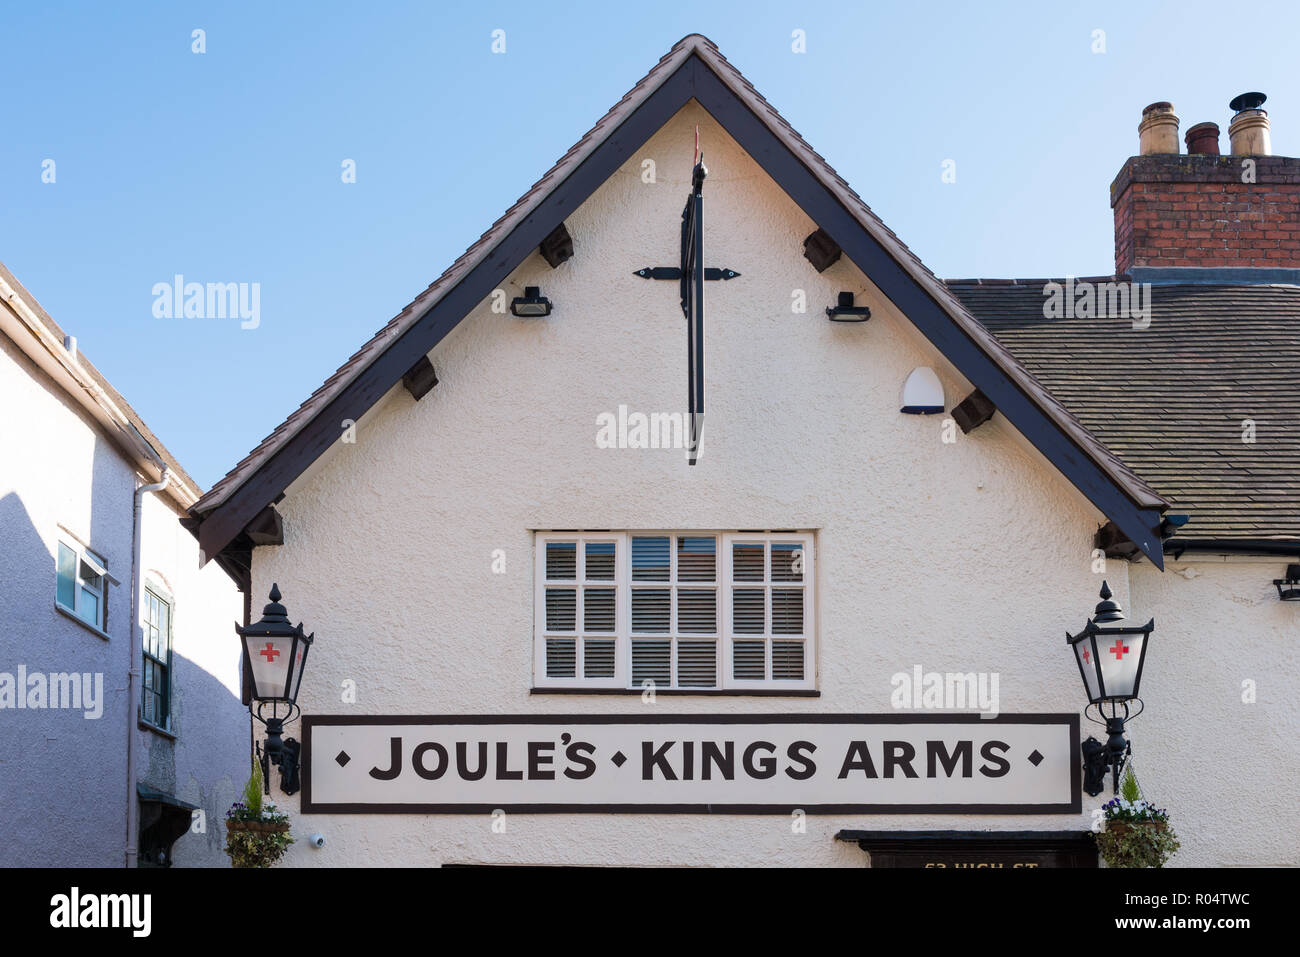 The Kings Arms pub in Church Stretton, Shropshire - Stock Image